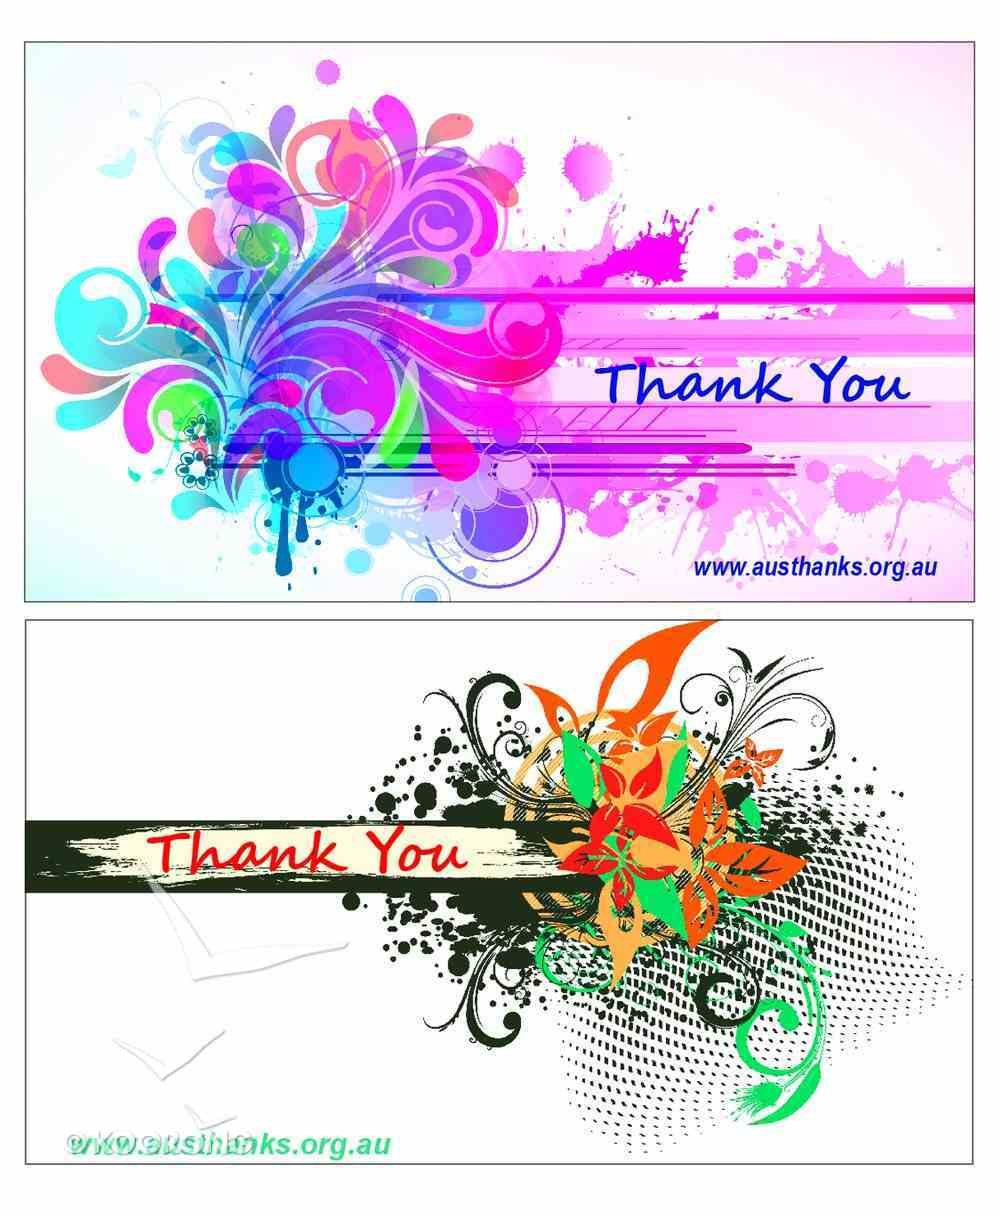 National Day of Thanks Mini Thank You Cards Abstract (30 Cards 2 Designs) Cards